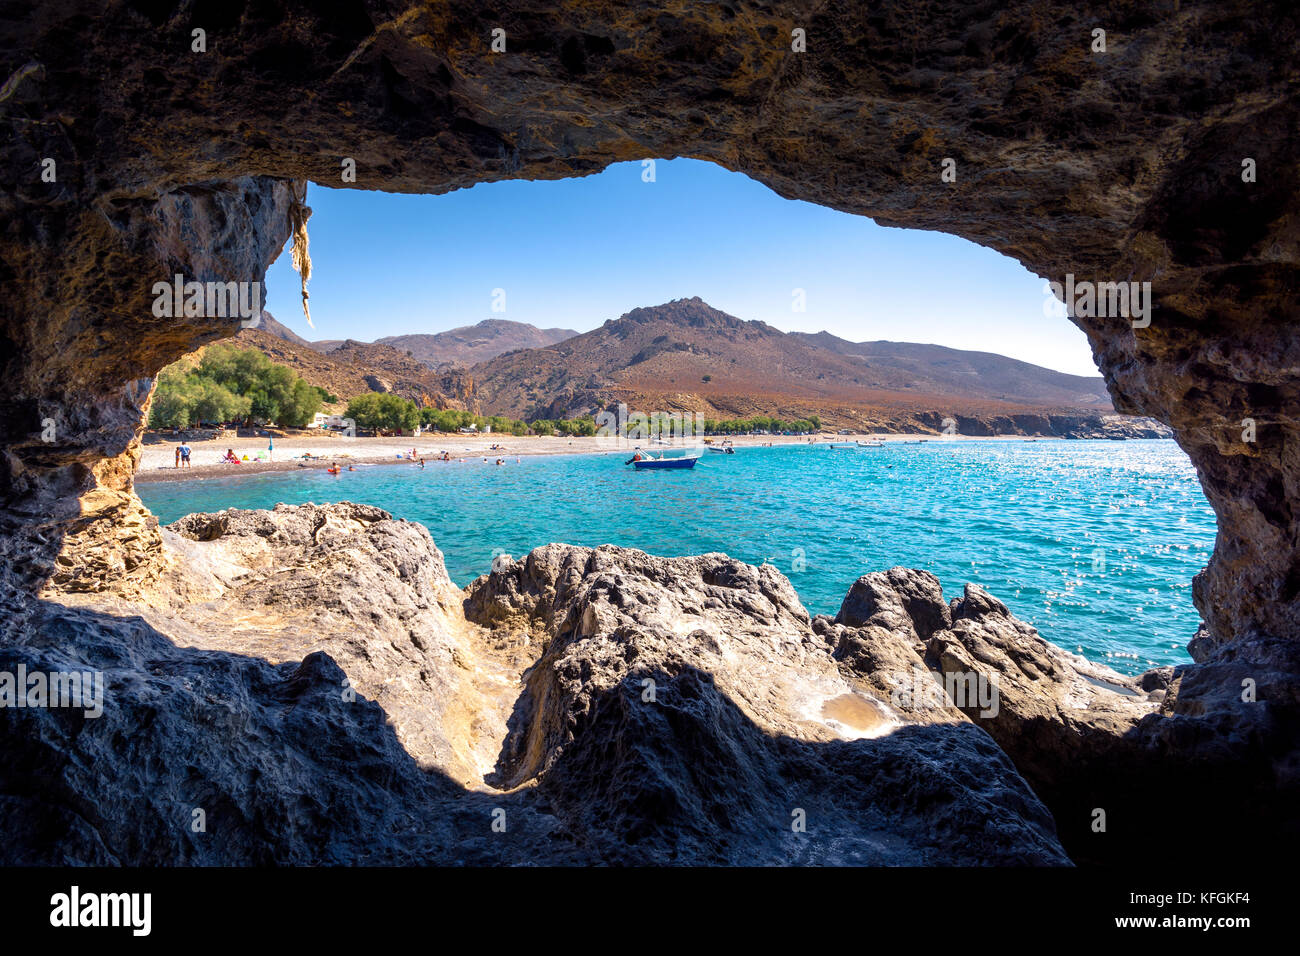 The Amazing Tropical Beach Of Panagia Tripiti Through A Cave In Crete With Sandy